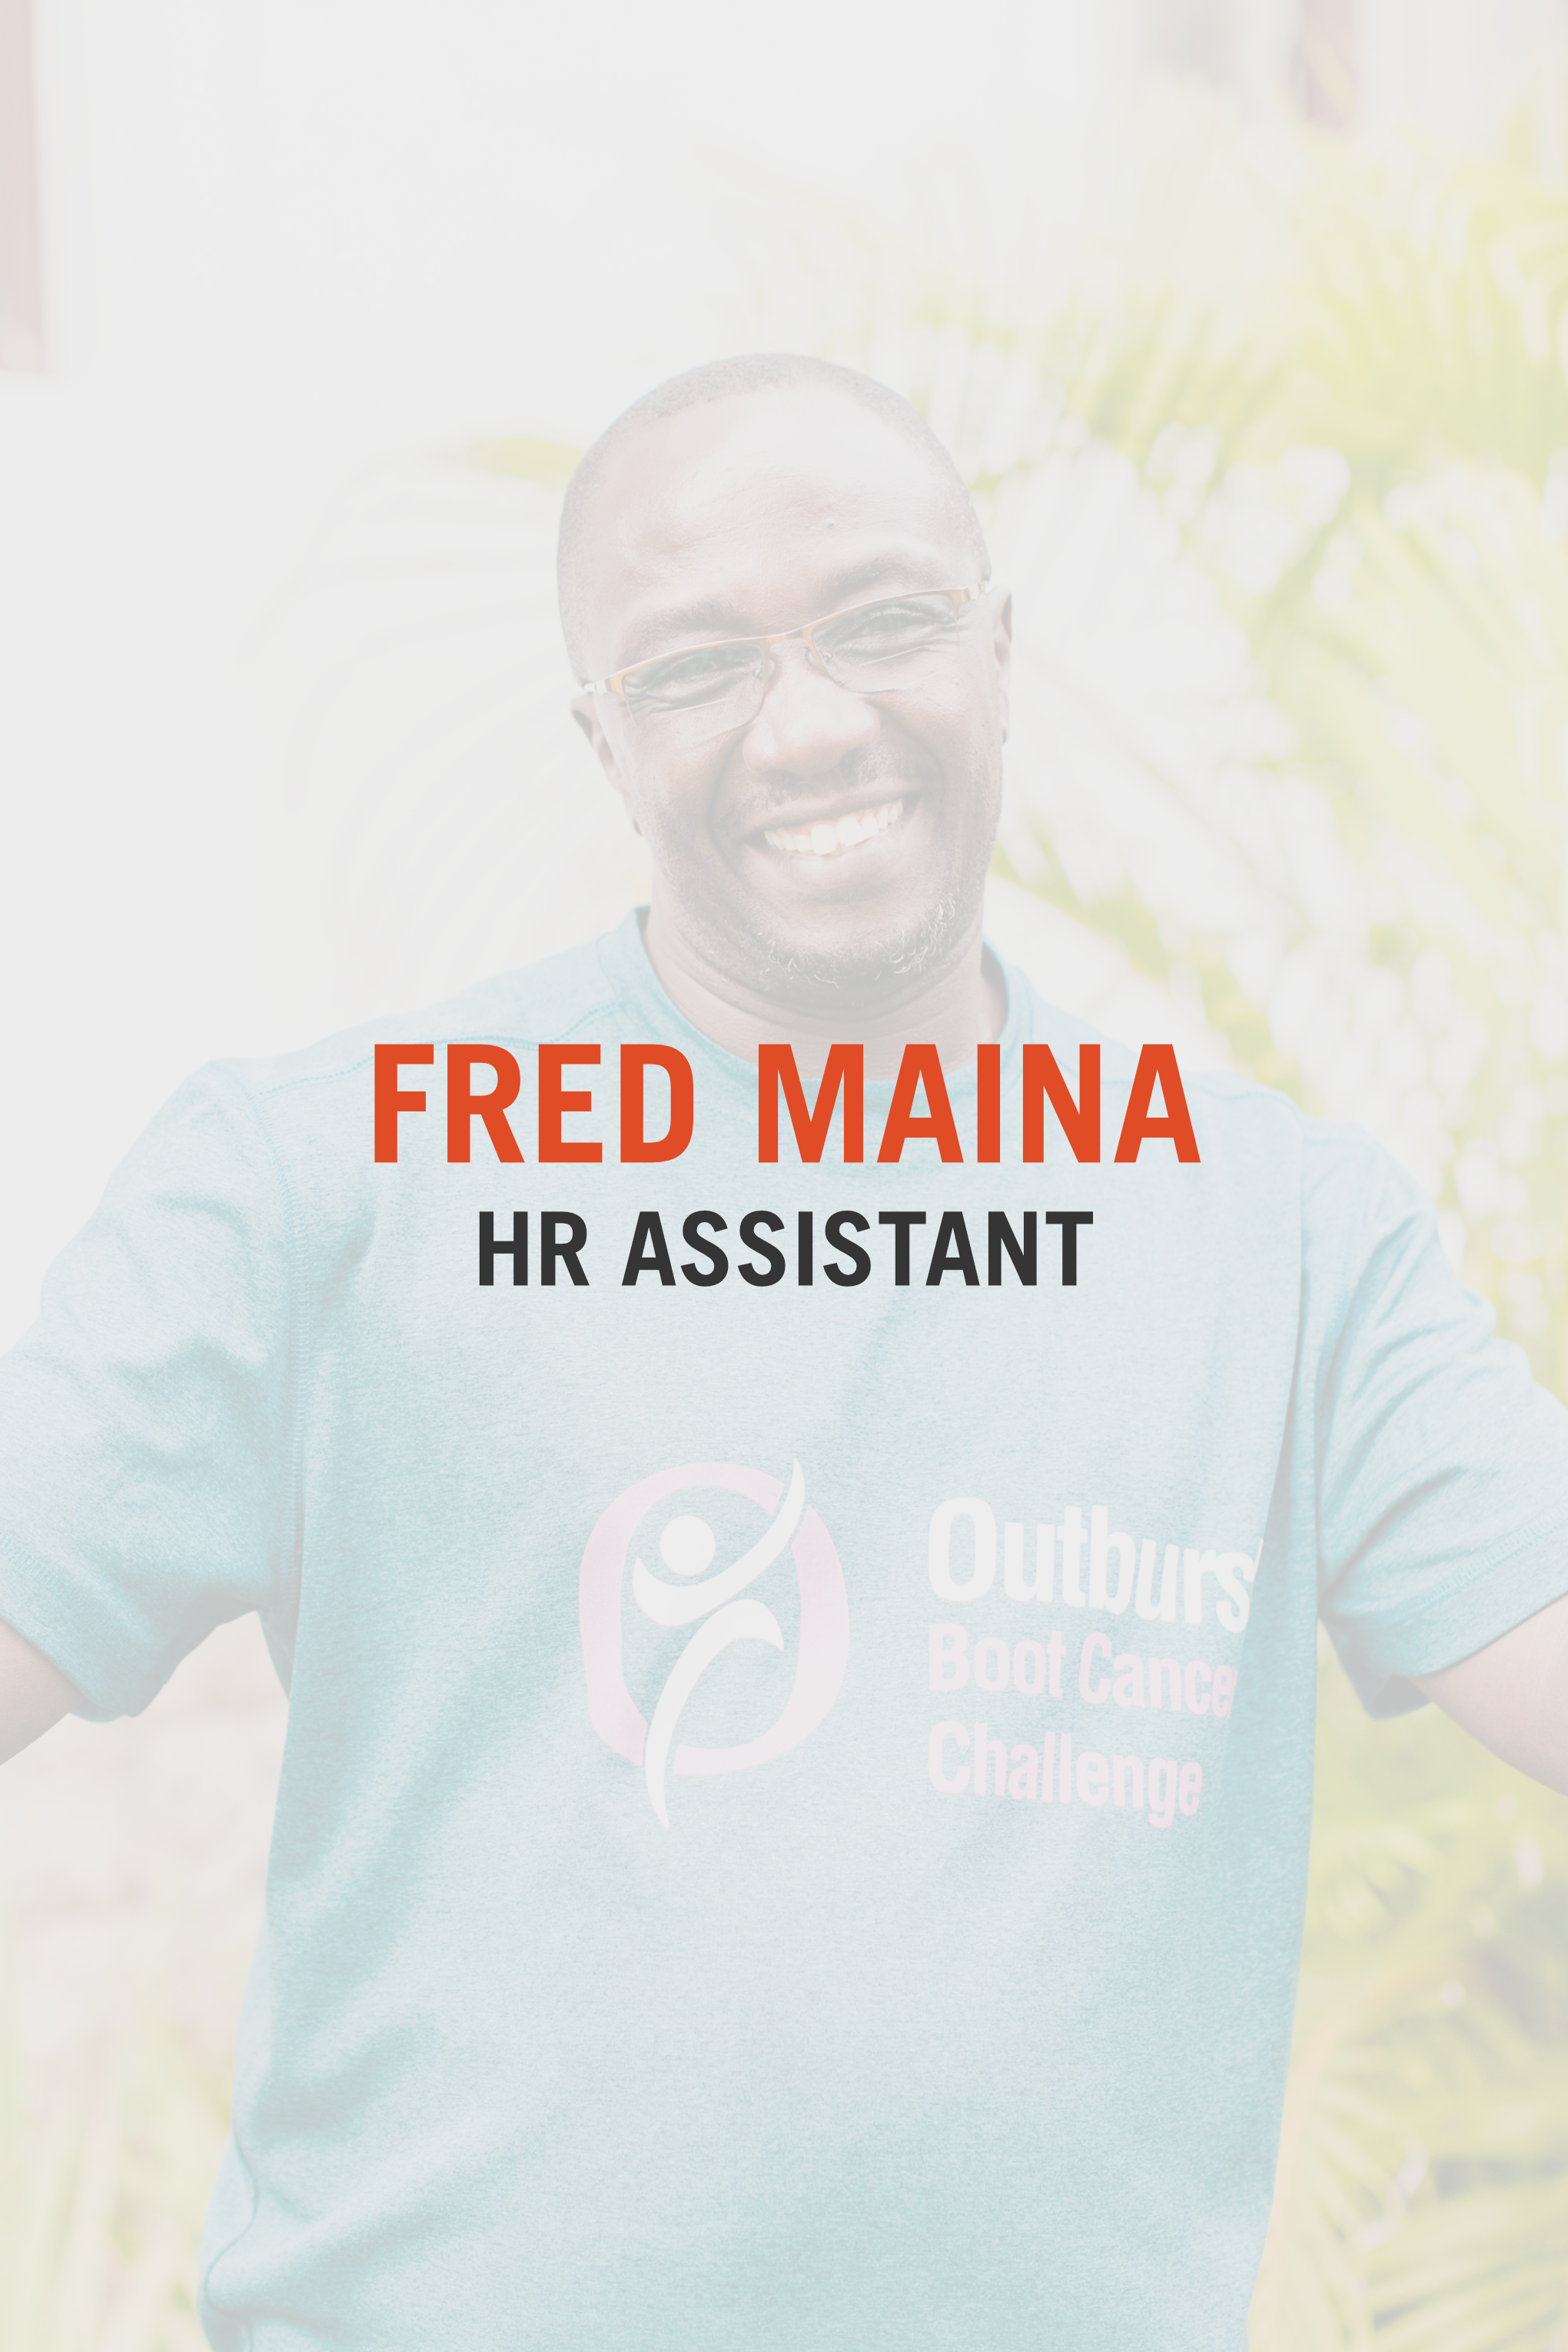 FRED MAINA TITLE.png